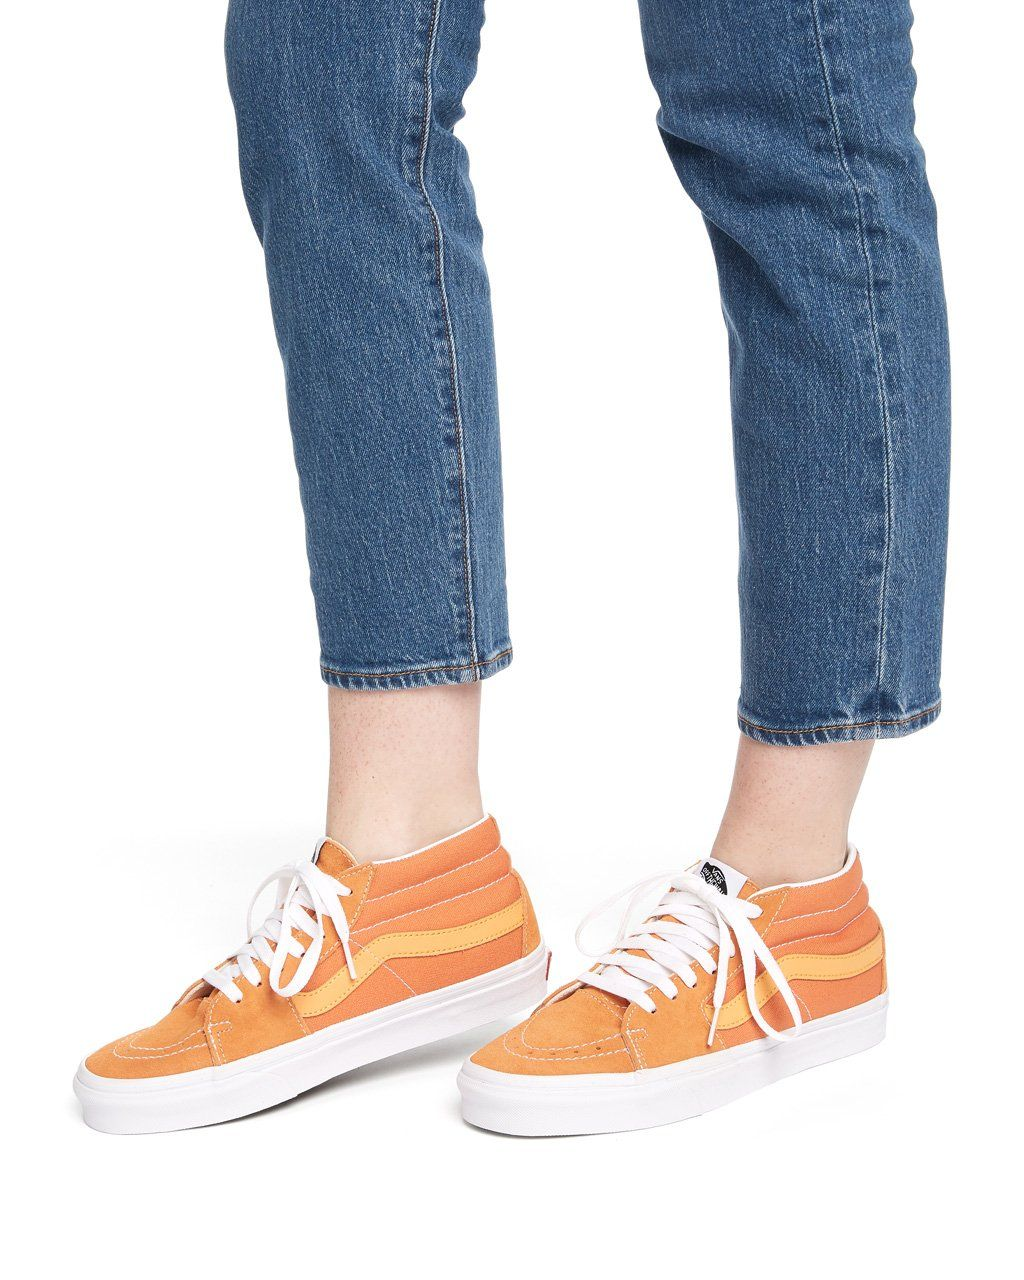 Sk8-Mid - Amberglow by vans - shoes